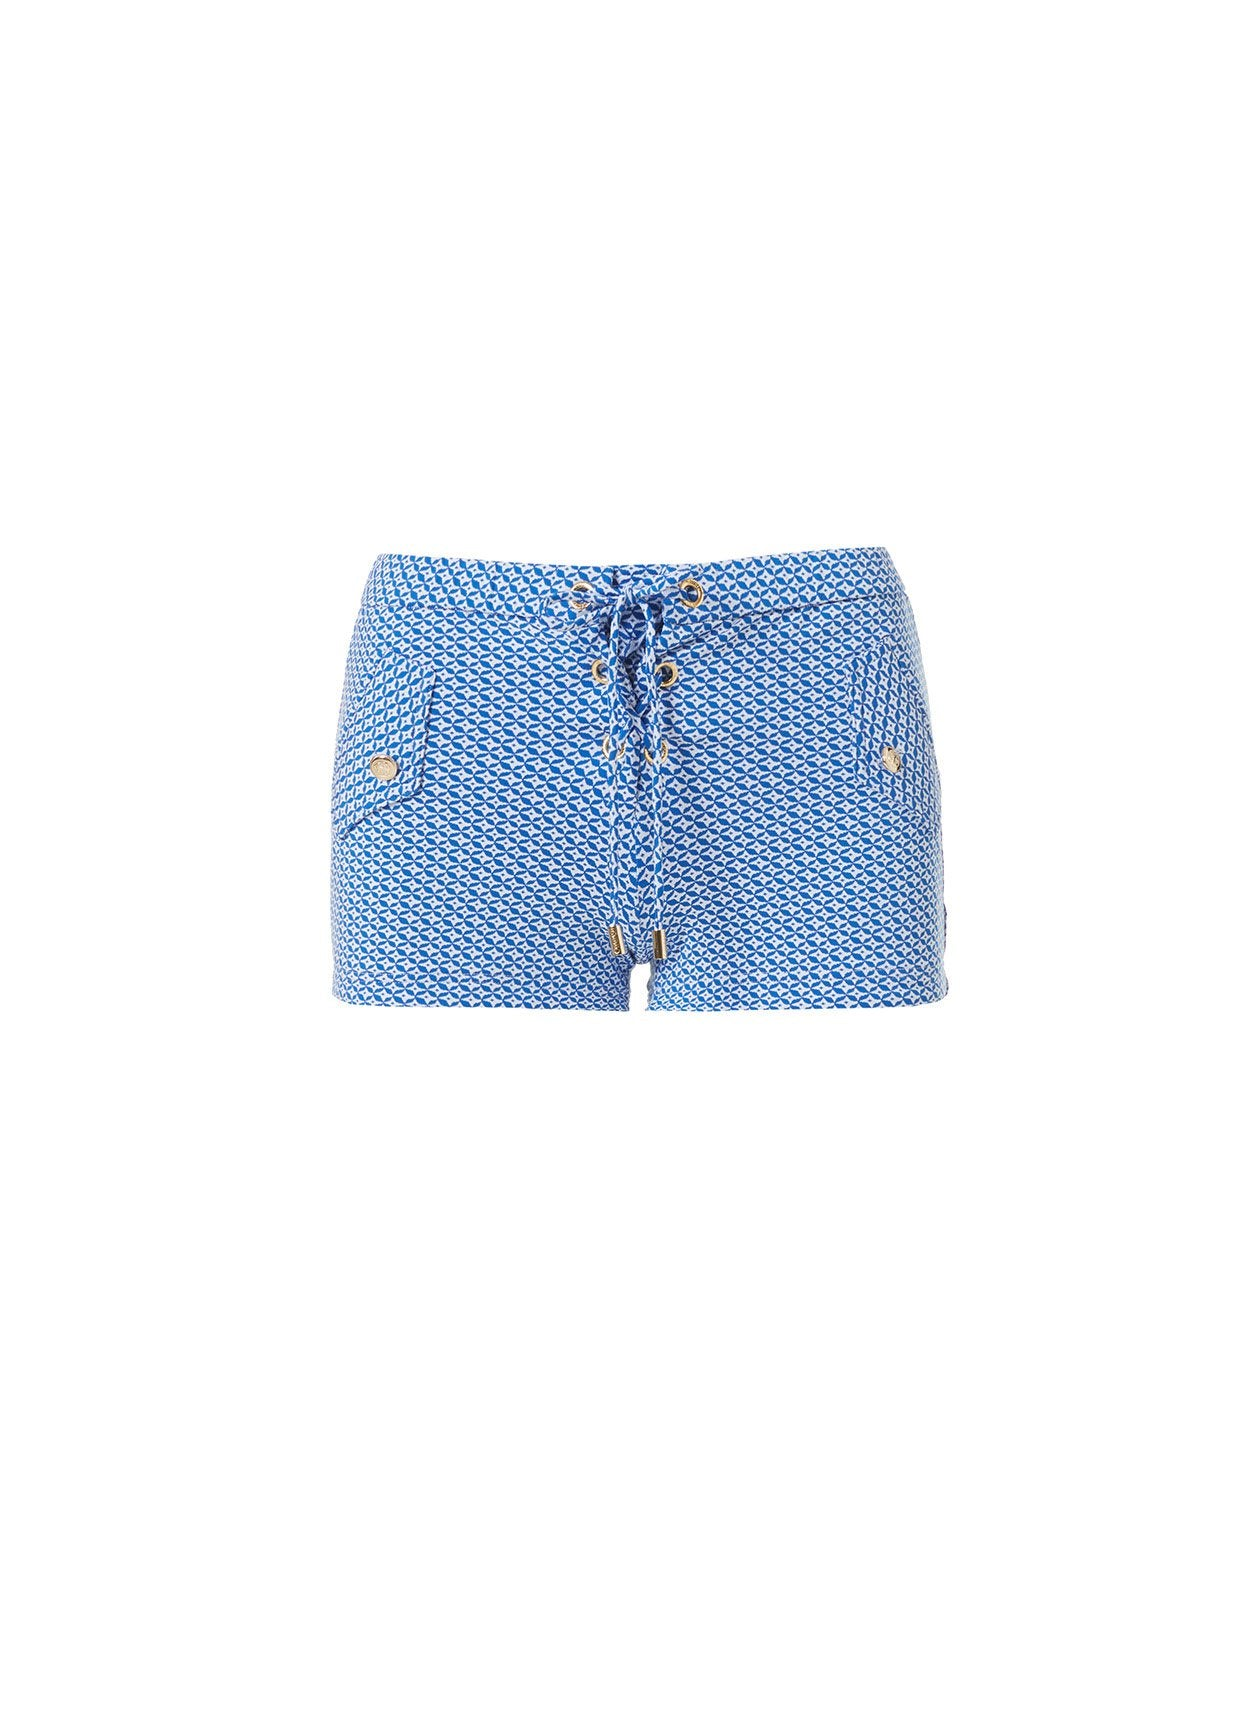 Sophia Mosaic Blue Lace Up Beach Shorts 2020